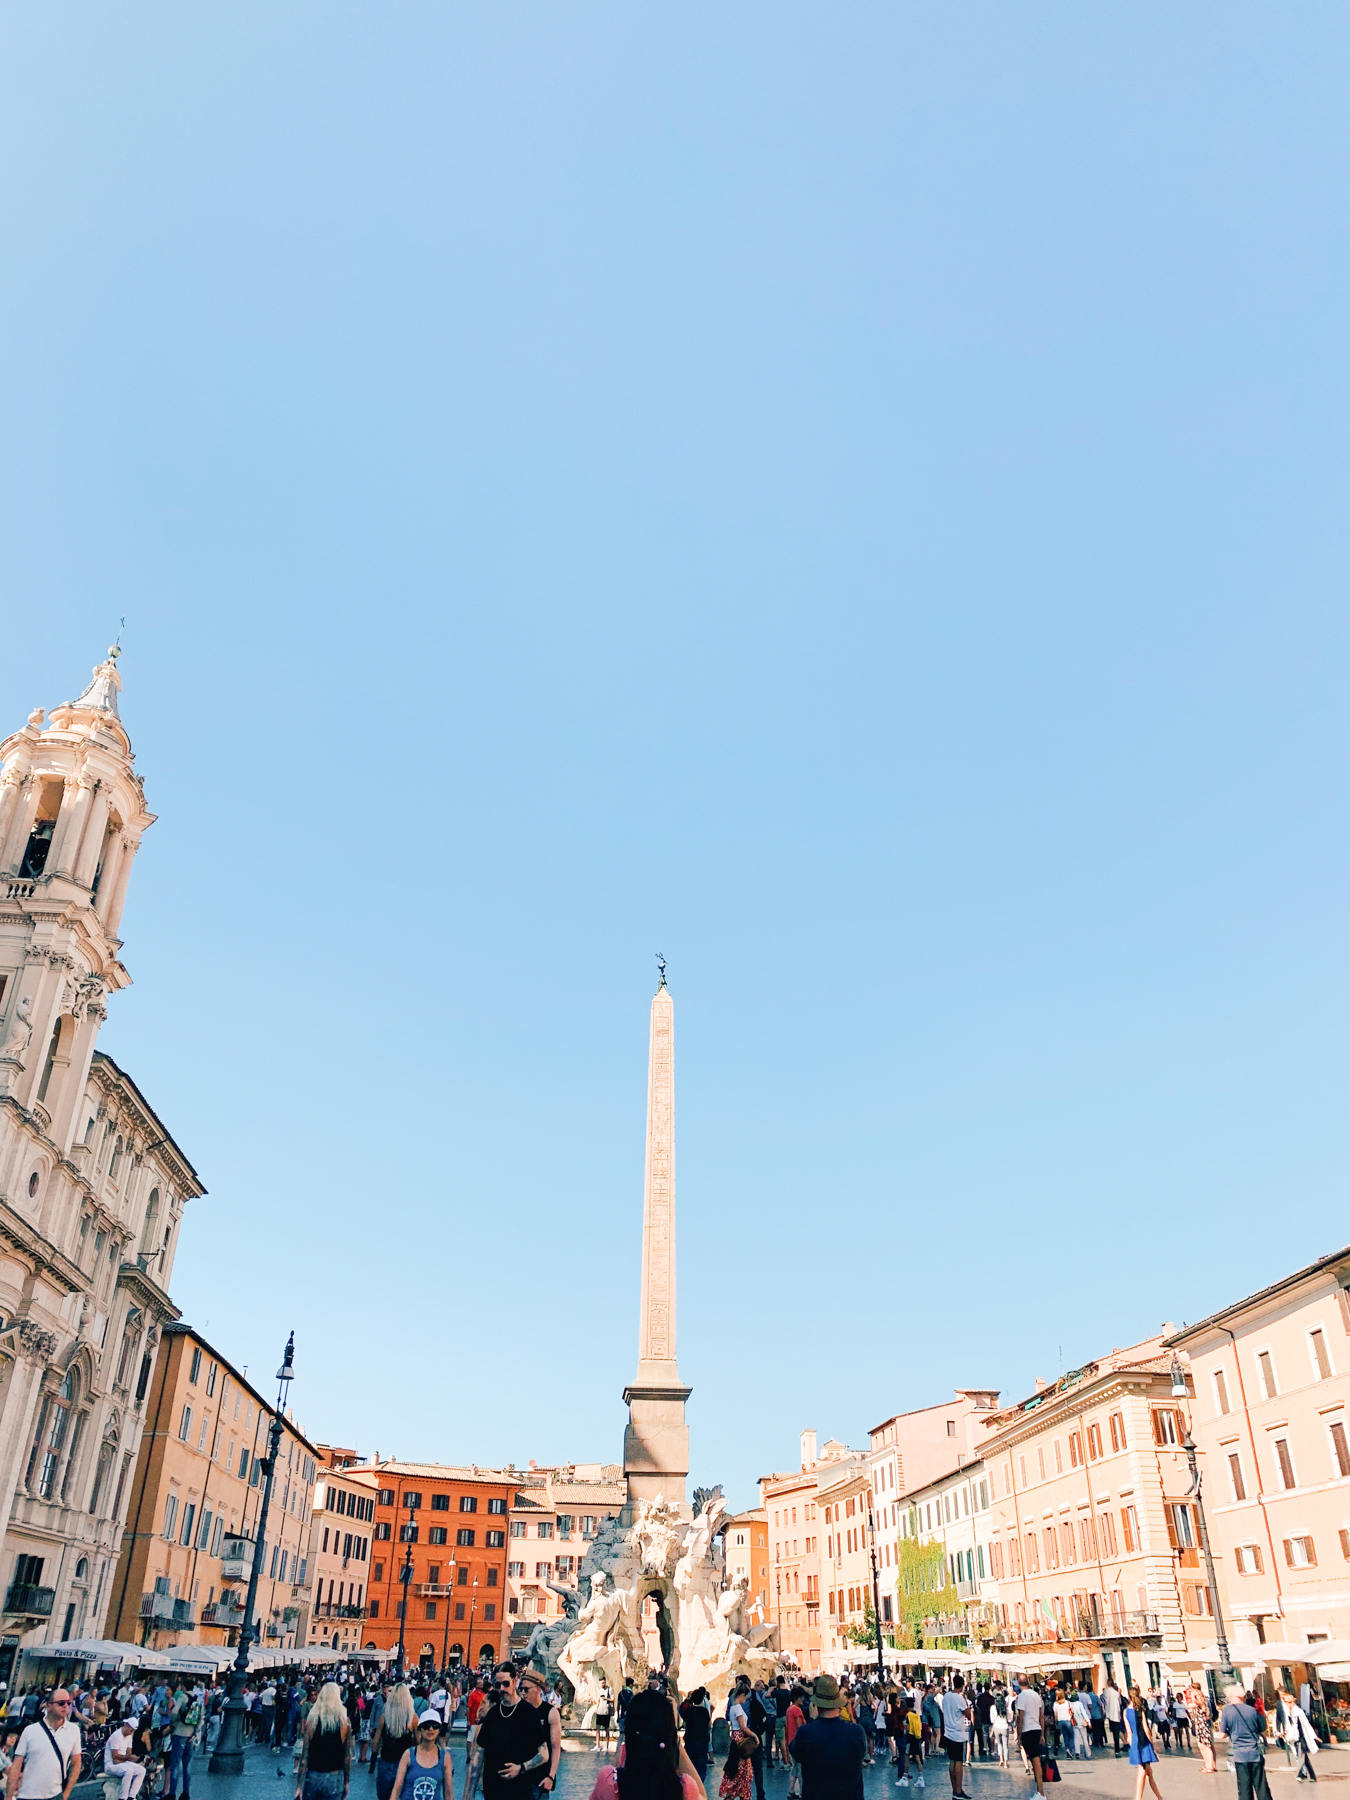 Piazza Navona, my favorite piazza in Rome.